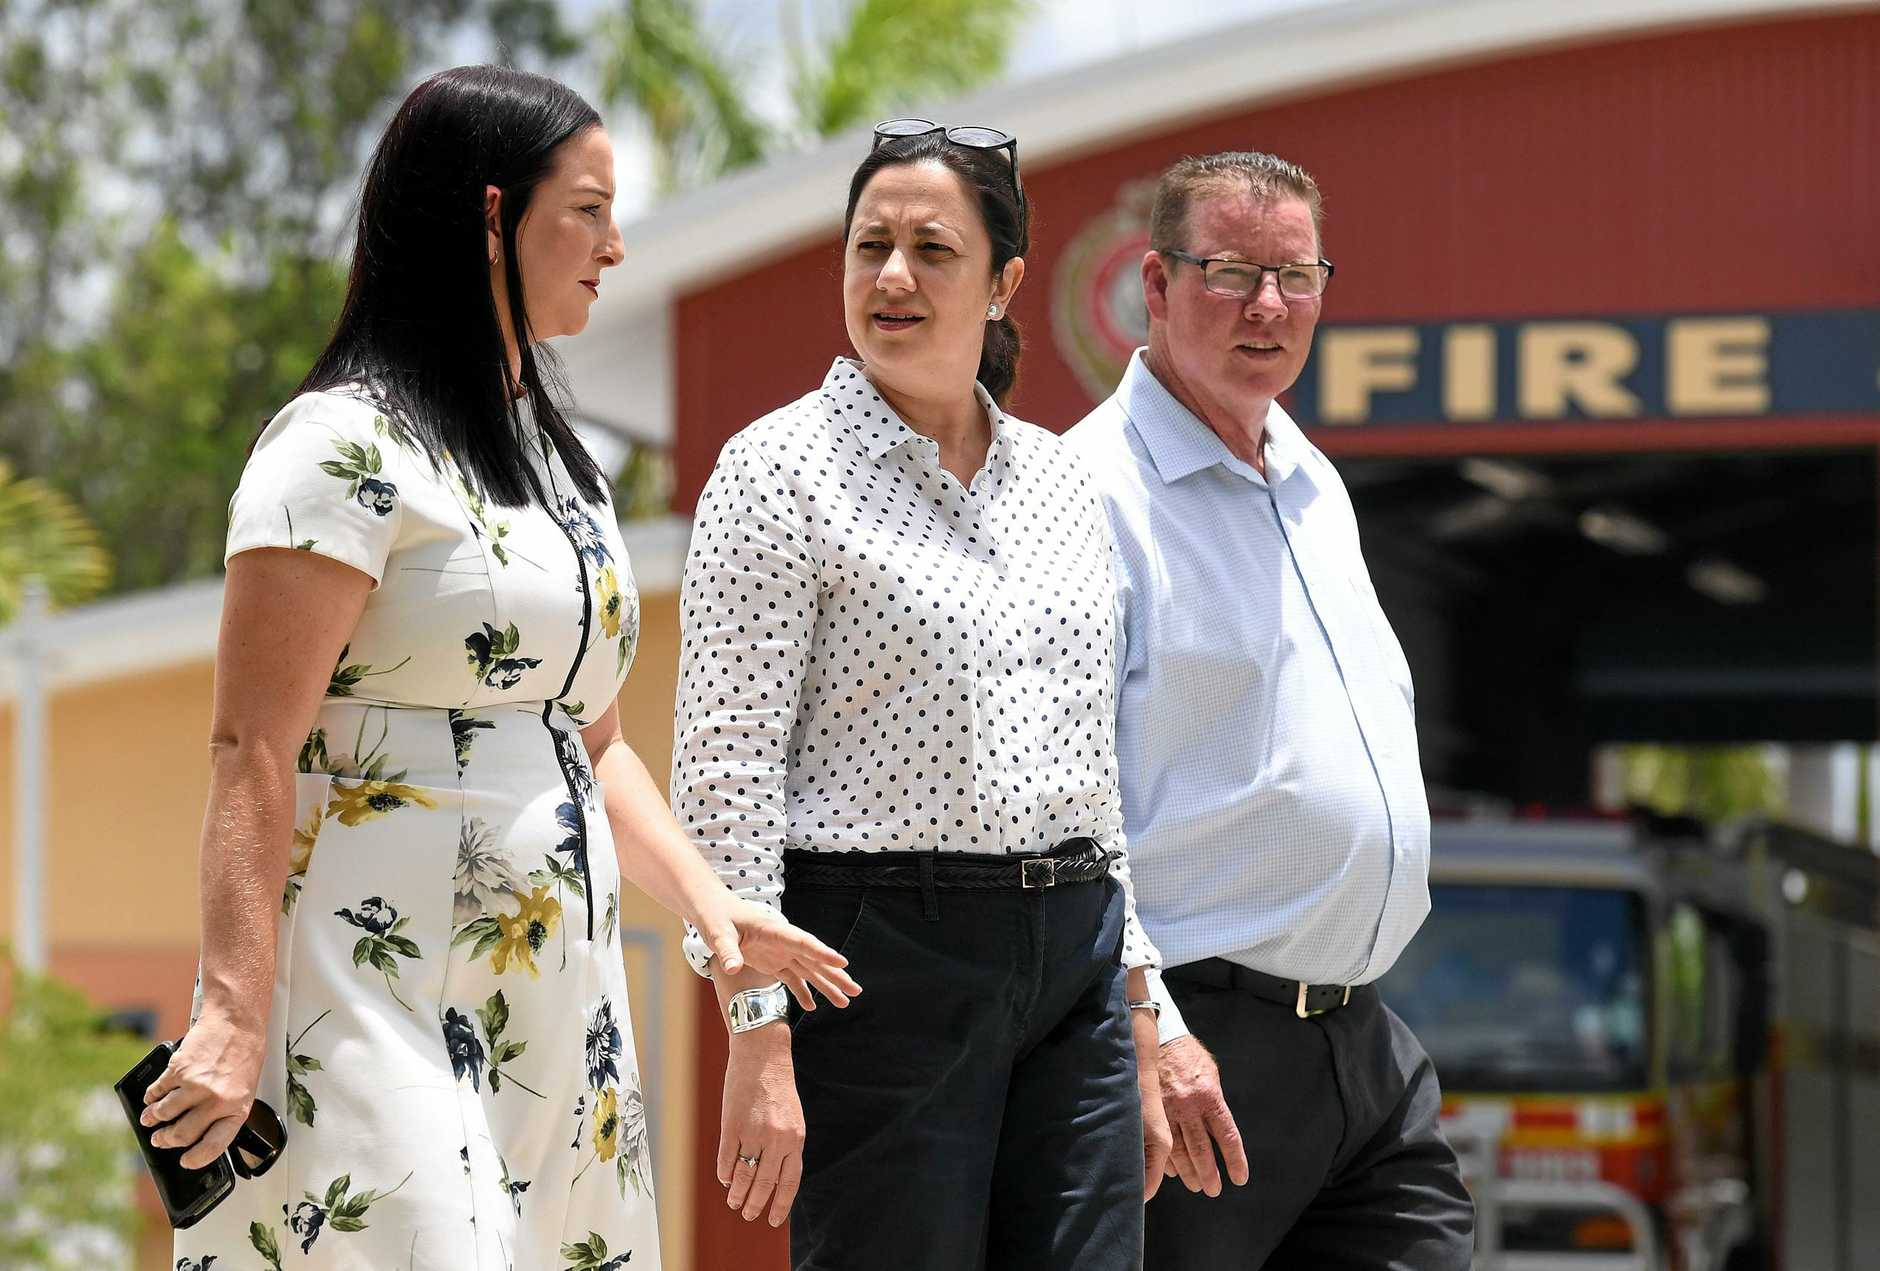 Queensland Premier Annastacia Palaszczuk (centre), Labor's candidate for Rockhampton Barry O'Rourke (right), and Labor's candidate for Keppel, Brittany Lauga, visit a Fire and Rescue station in Rockhampton, Tuesday, November 21, 2017. Ms Palaszczuk is on the campaign trail ahead of the November 25 state election. (AAP Image/Dan Peled) NO ARCHIVING